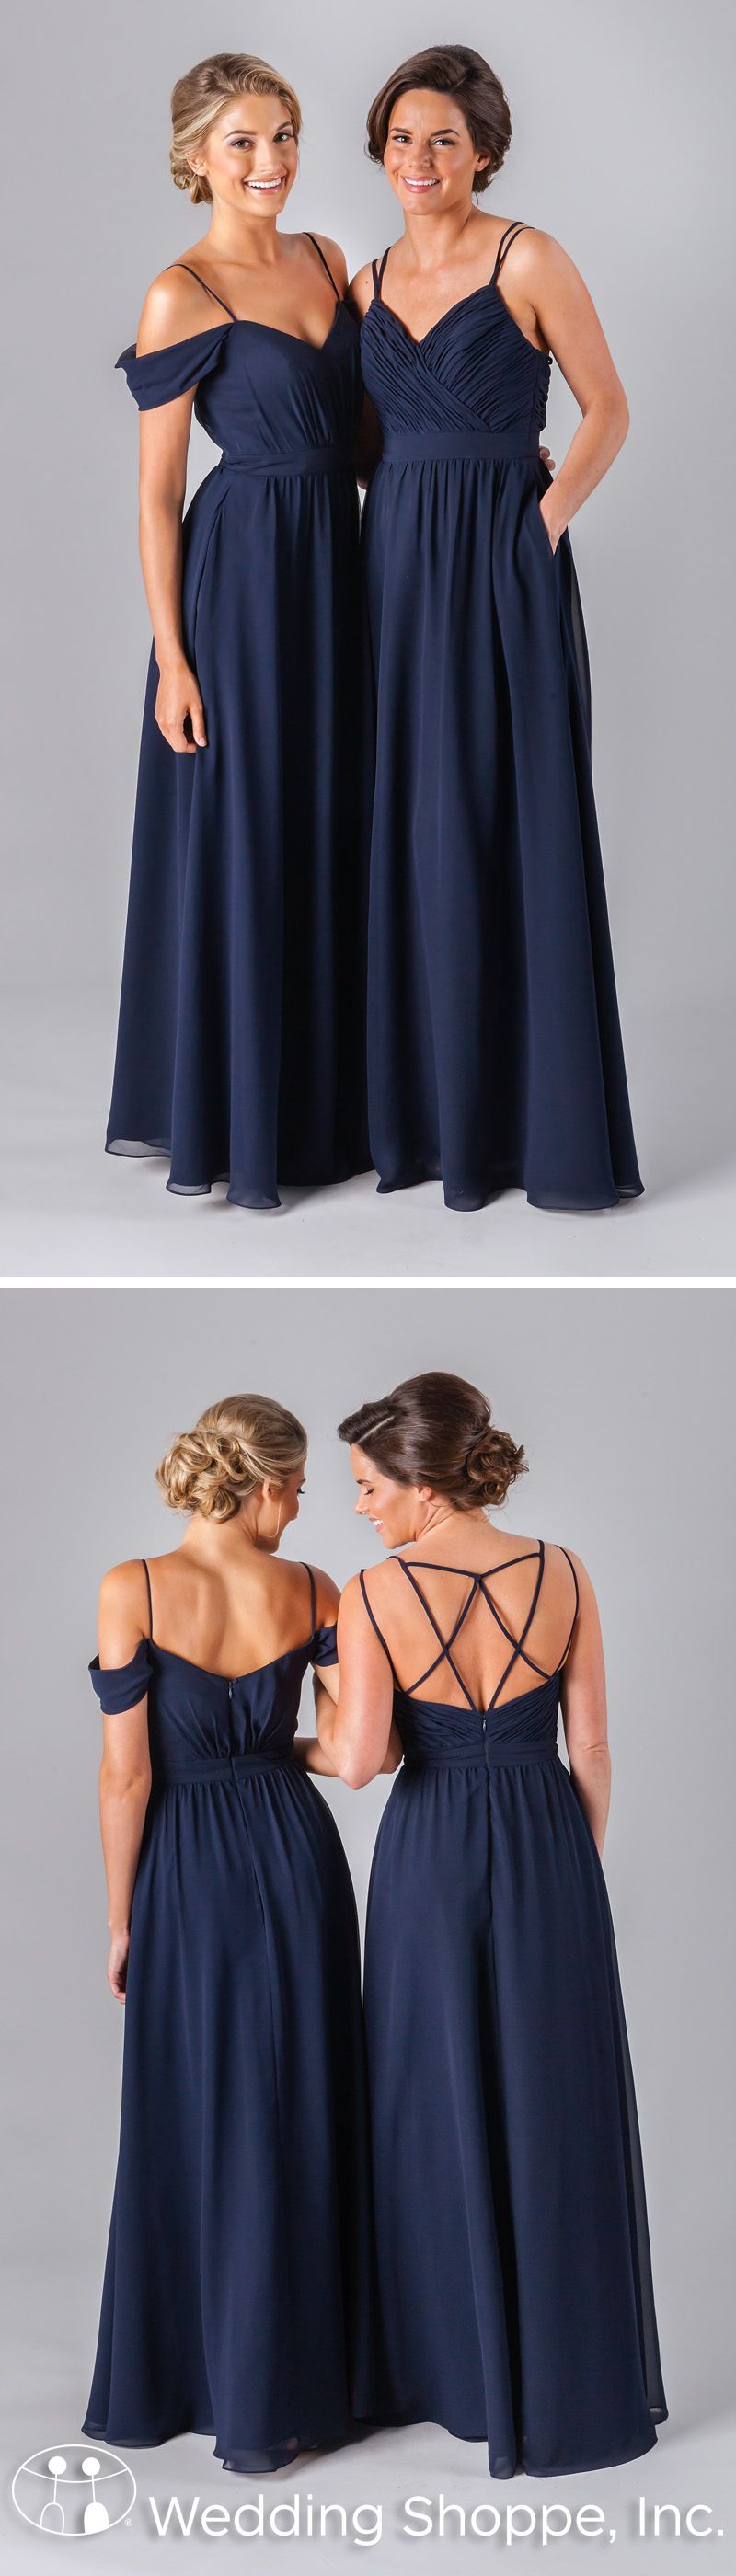 Long mismatched navy bridesmaid dresses with stunning details